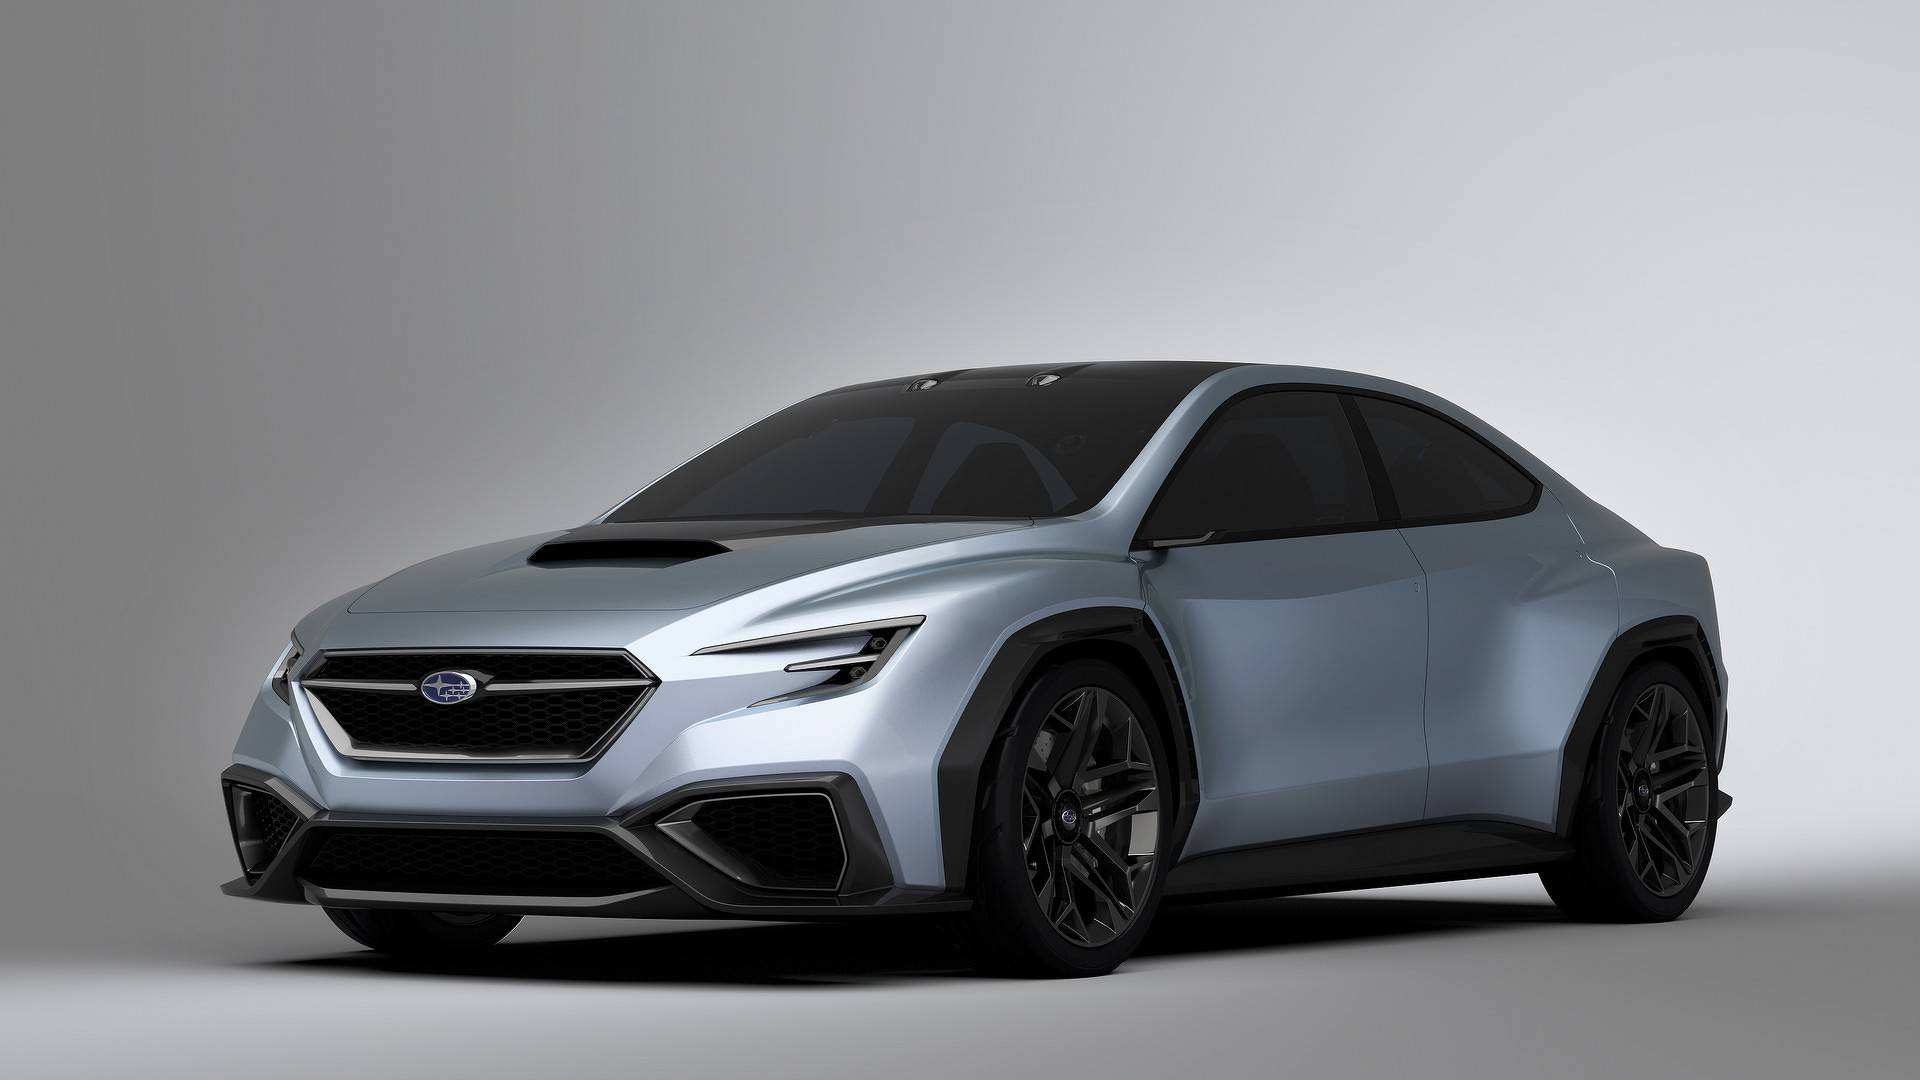 69 All New 2020 Subaru Wrx Series Gray Performance for 2020 Subaru Wrx Series Gray